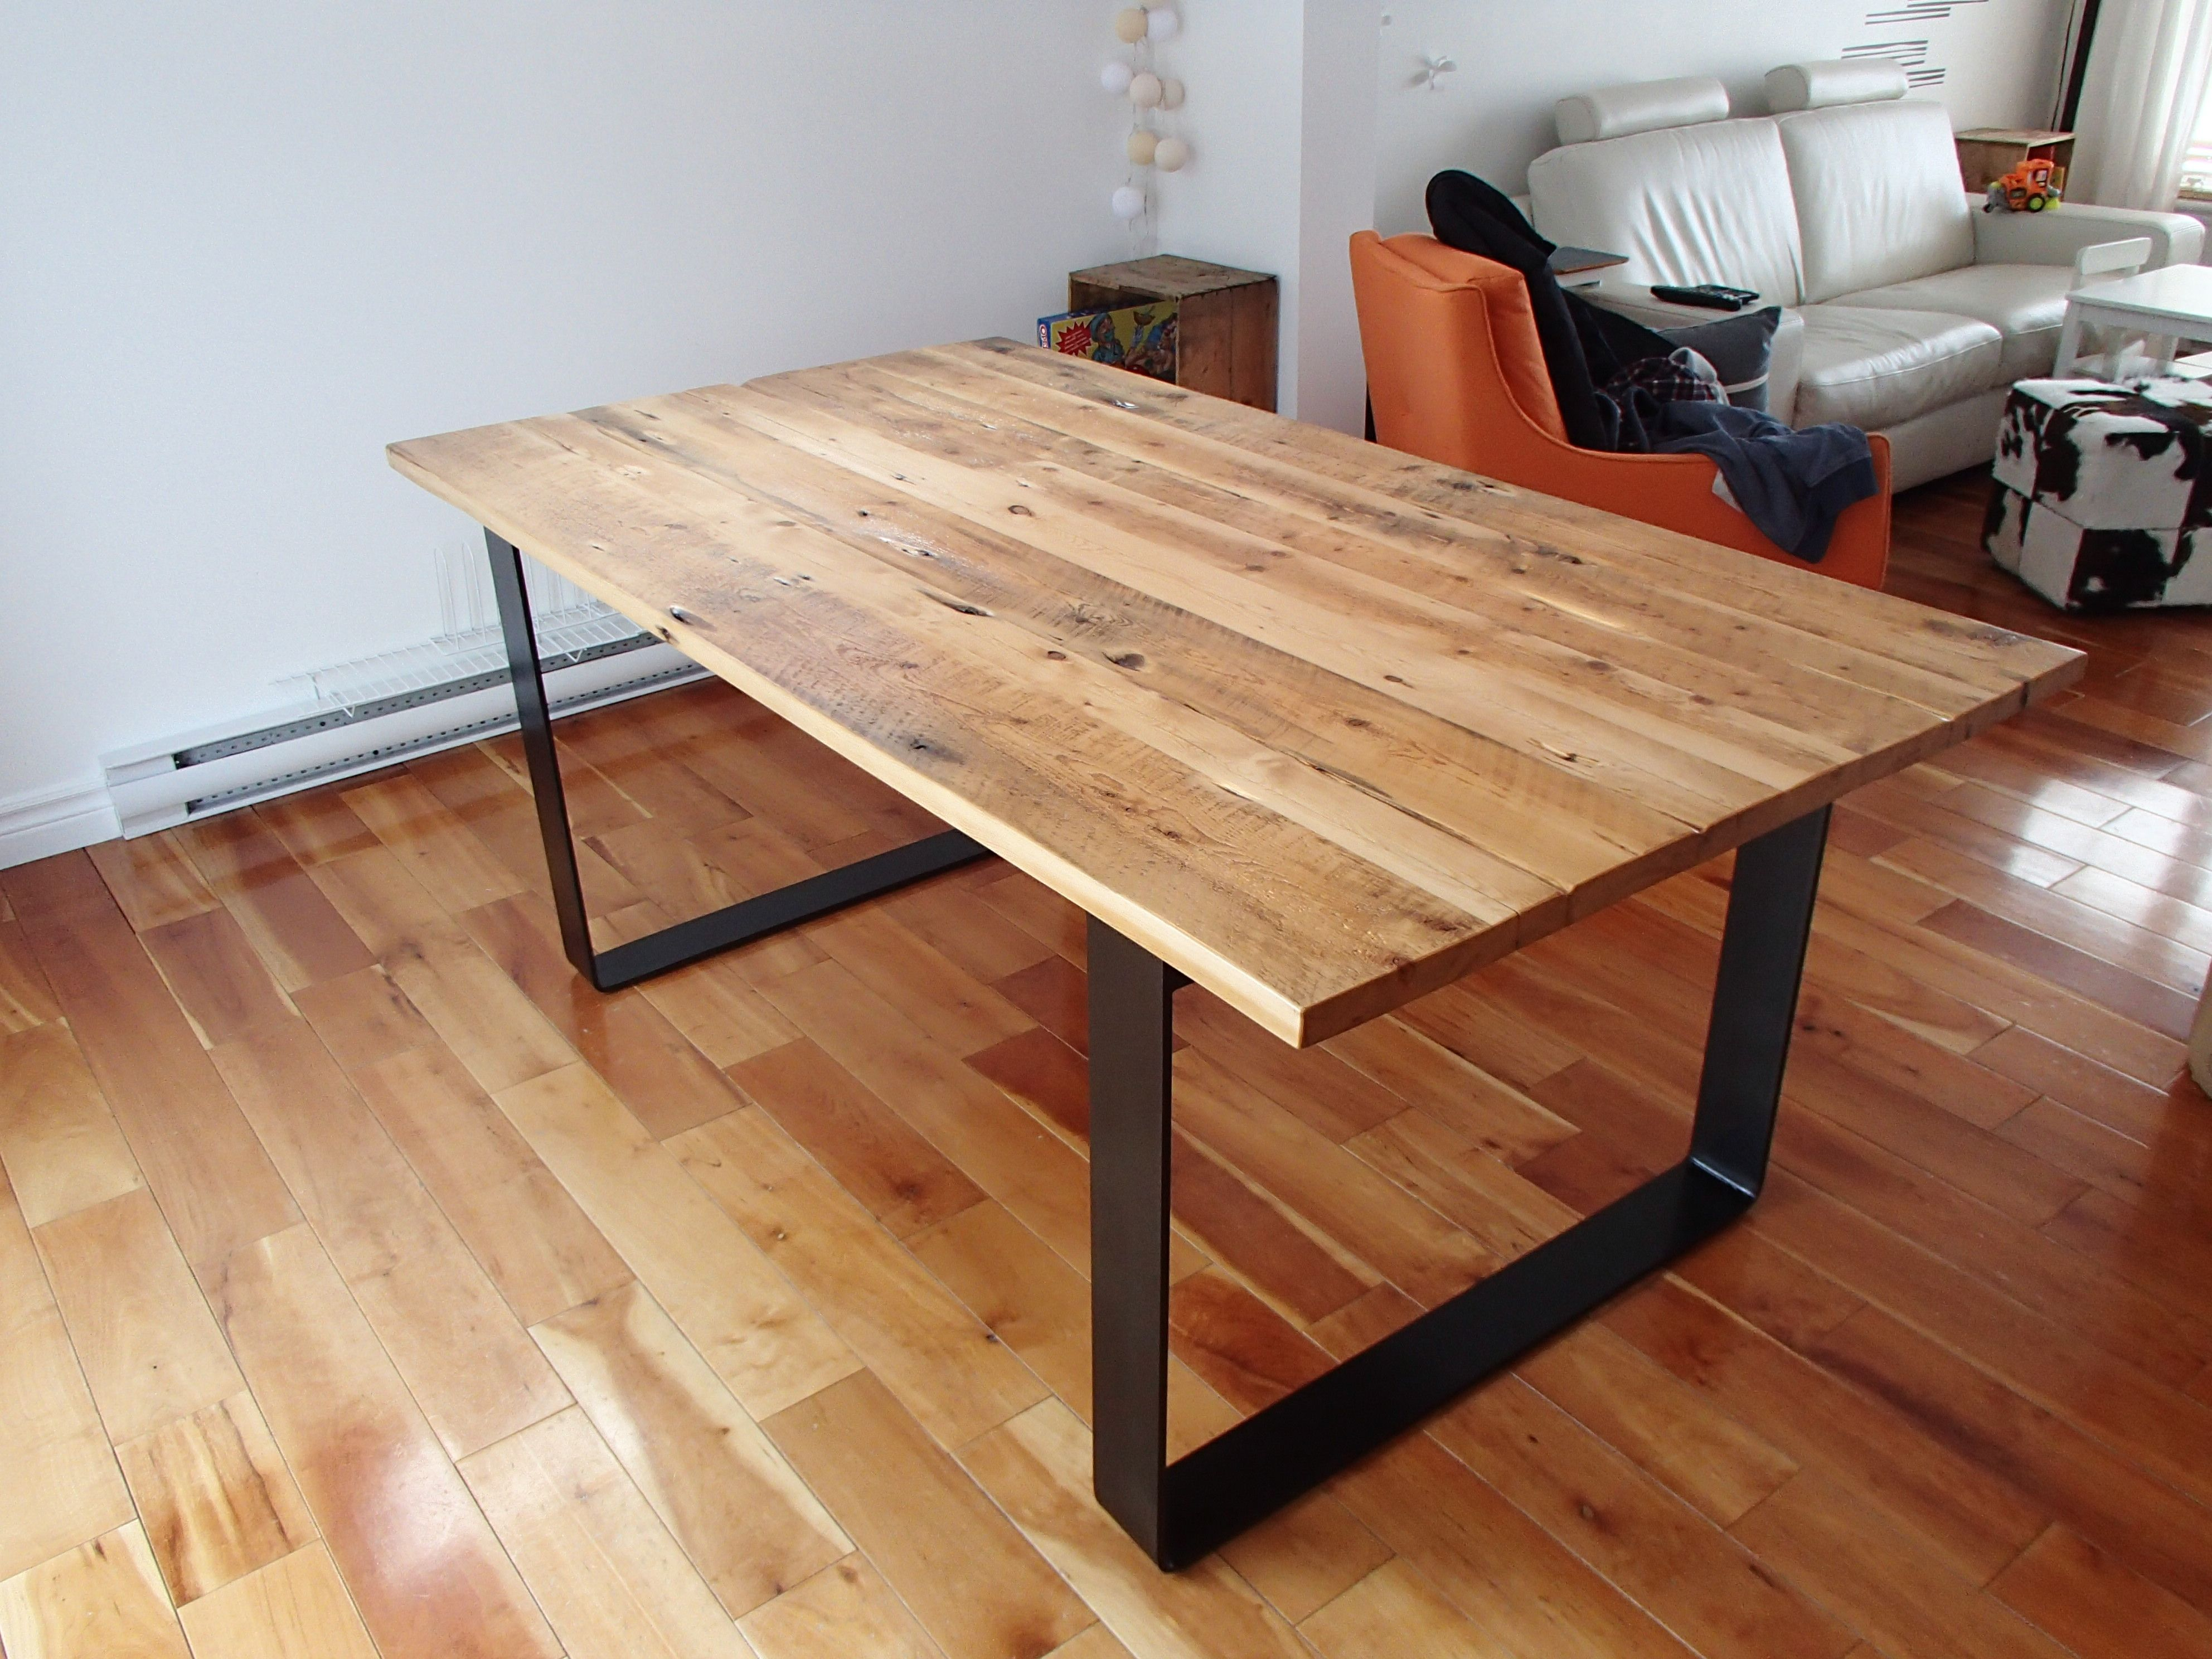 collection industriel table bois de grange et acier recycl table pinterest table bois. Black Bedroom Furniture Sets. Home Design Ideas